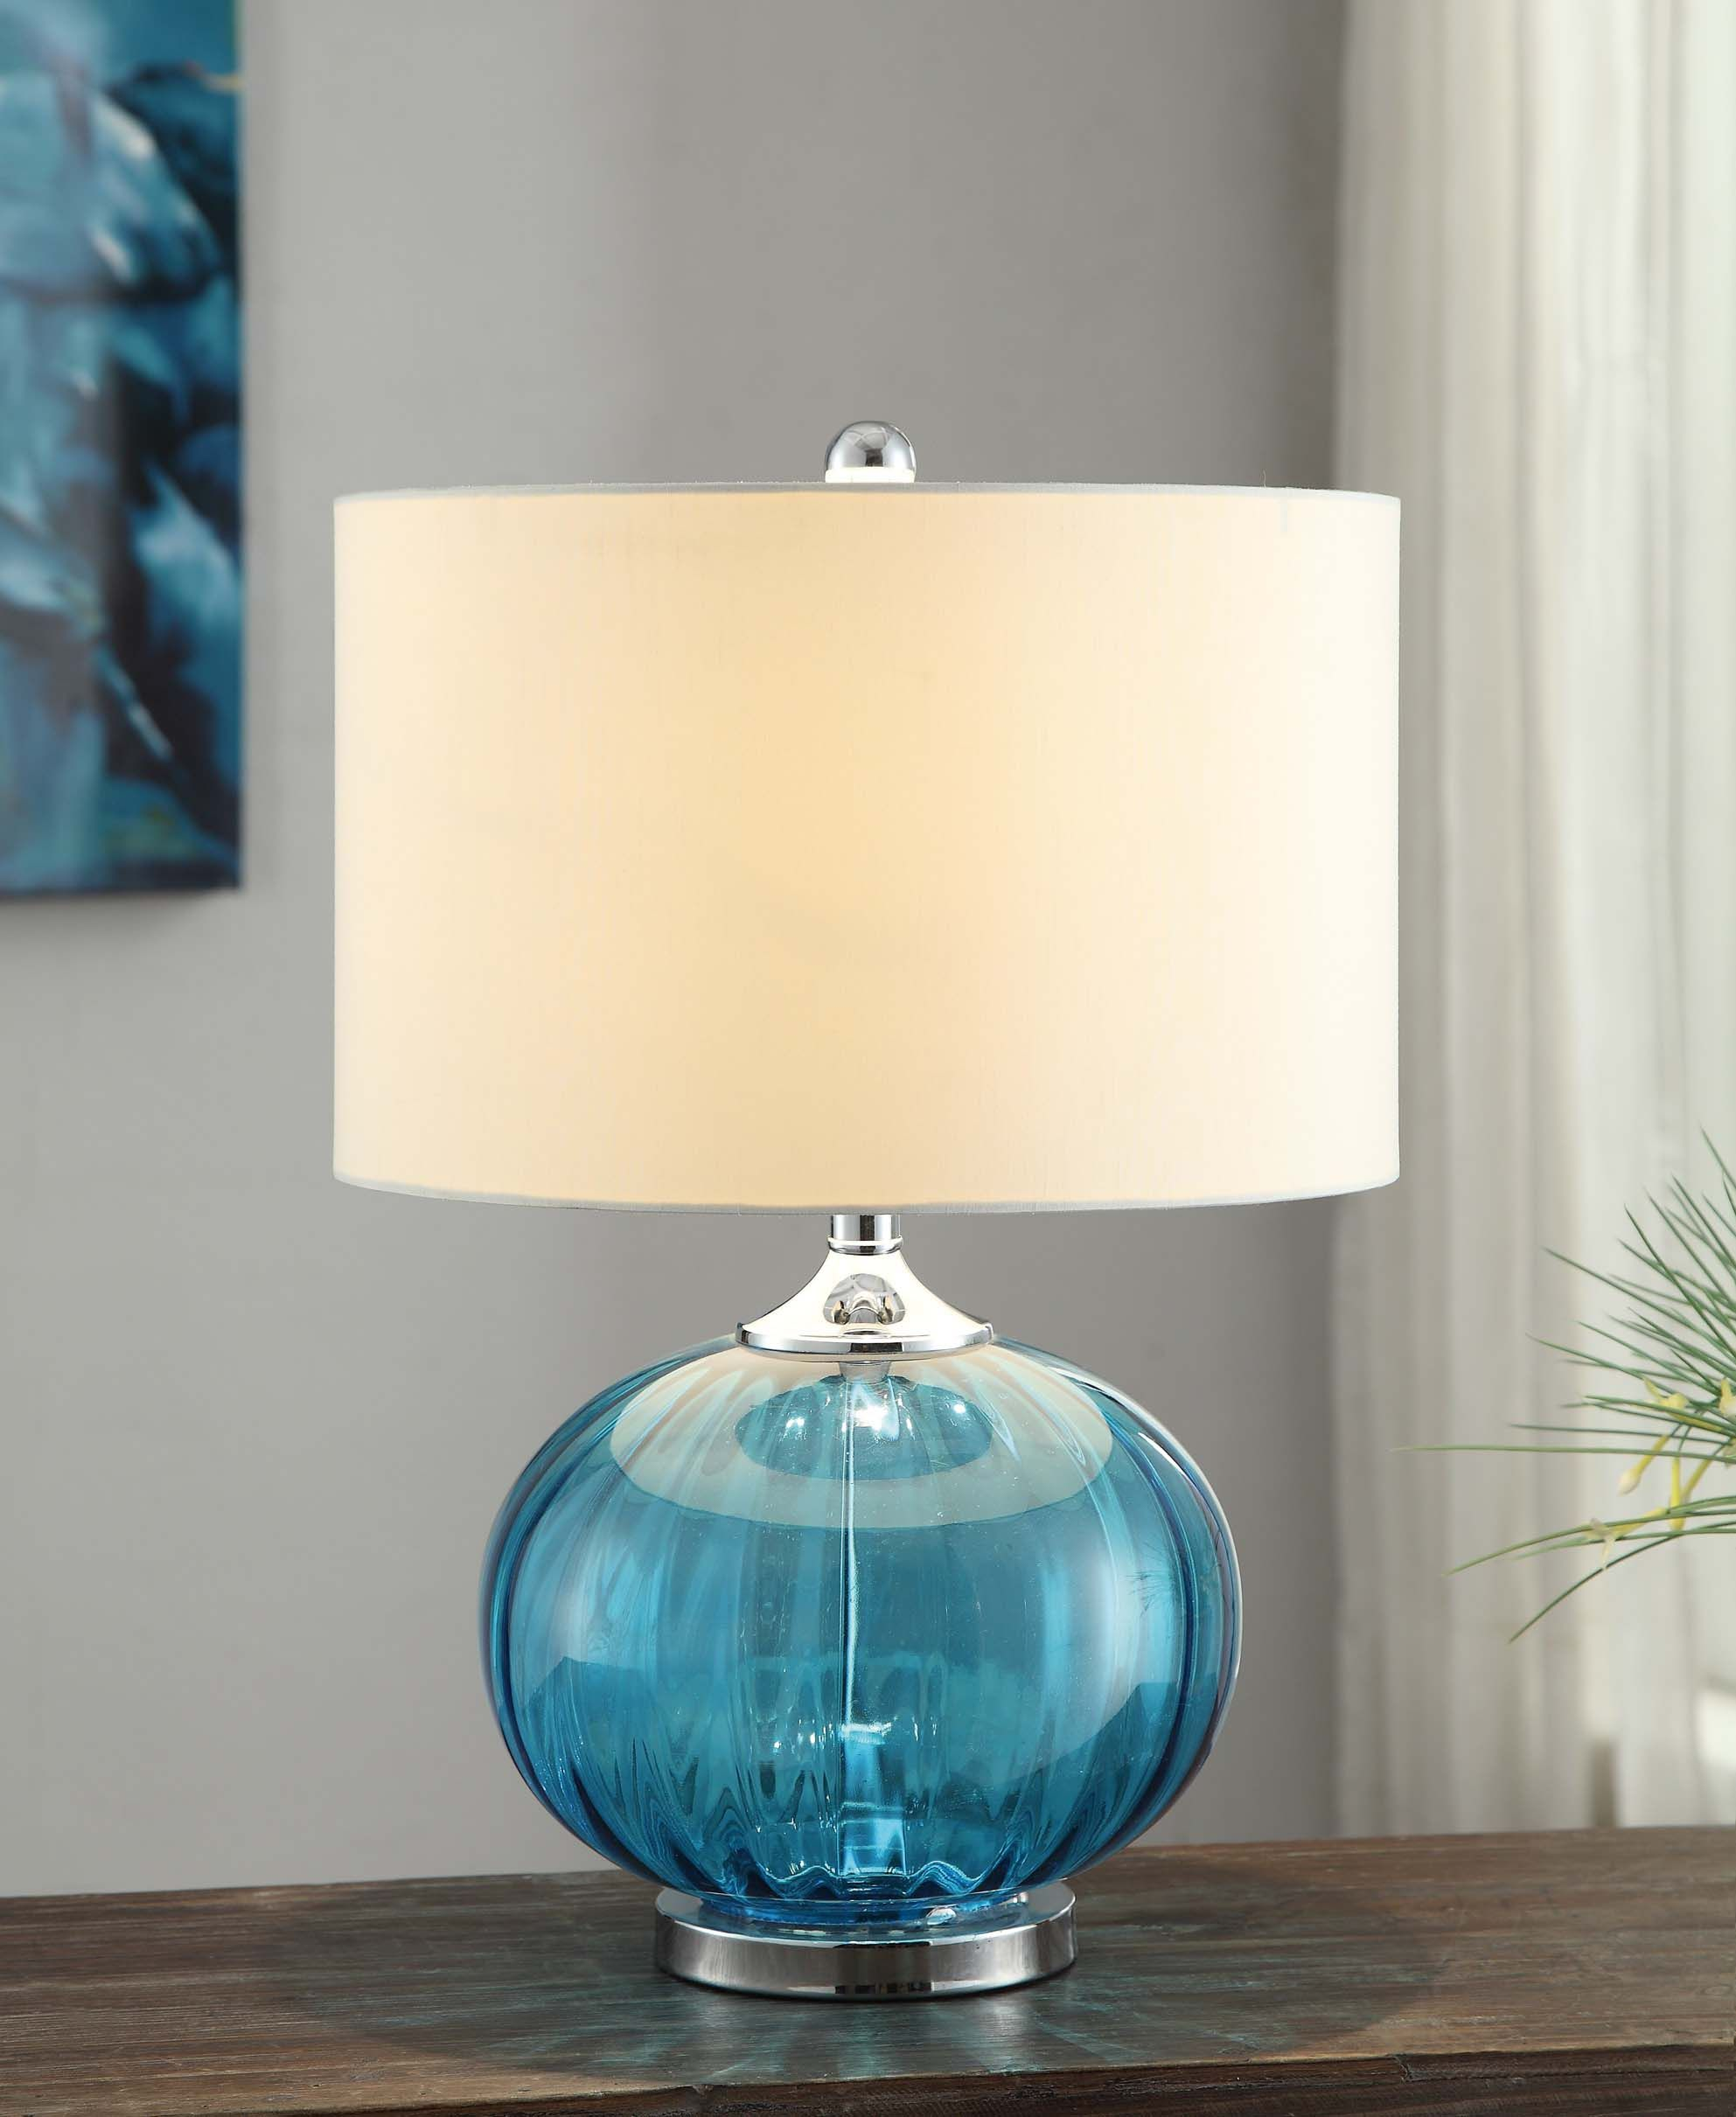 New Port Table Lamp Glass Table Lamp Contemporary Table Lamps Table Lamp